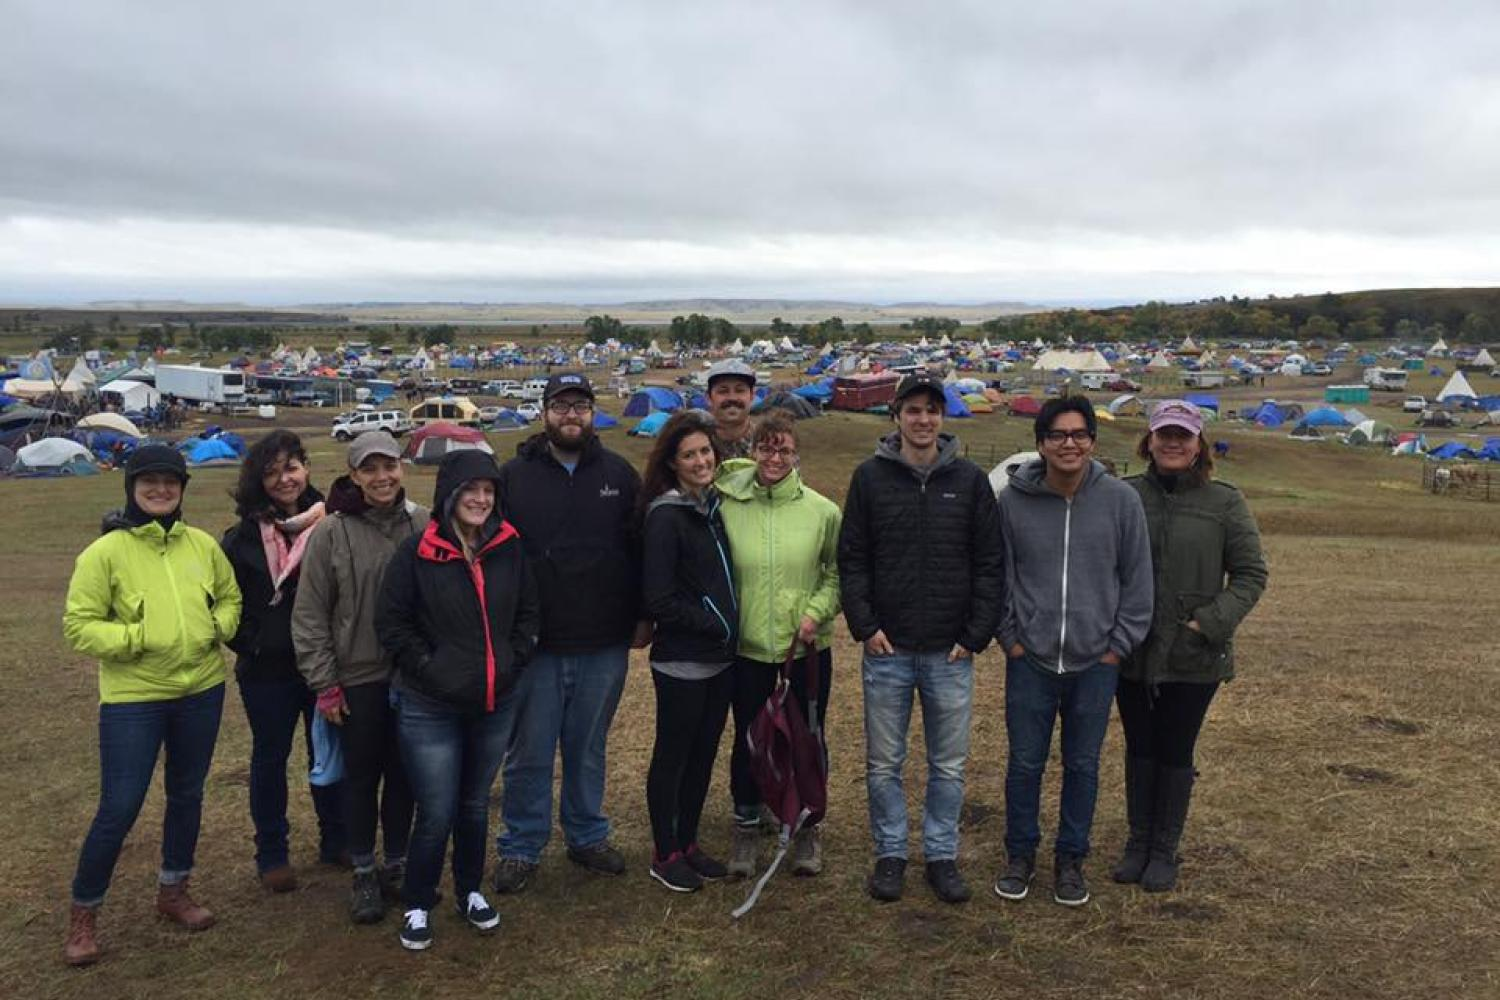 American Indian Law Clinic Represents Standing Rock Sioux Tribe in Fight Against Dakota Access Pipeline